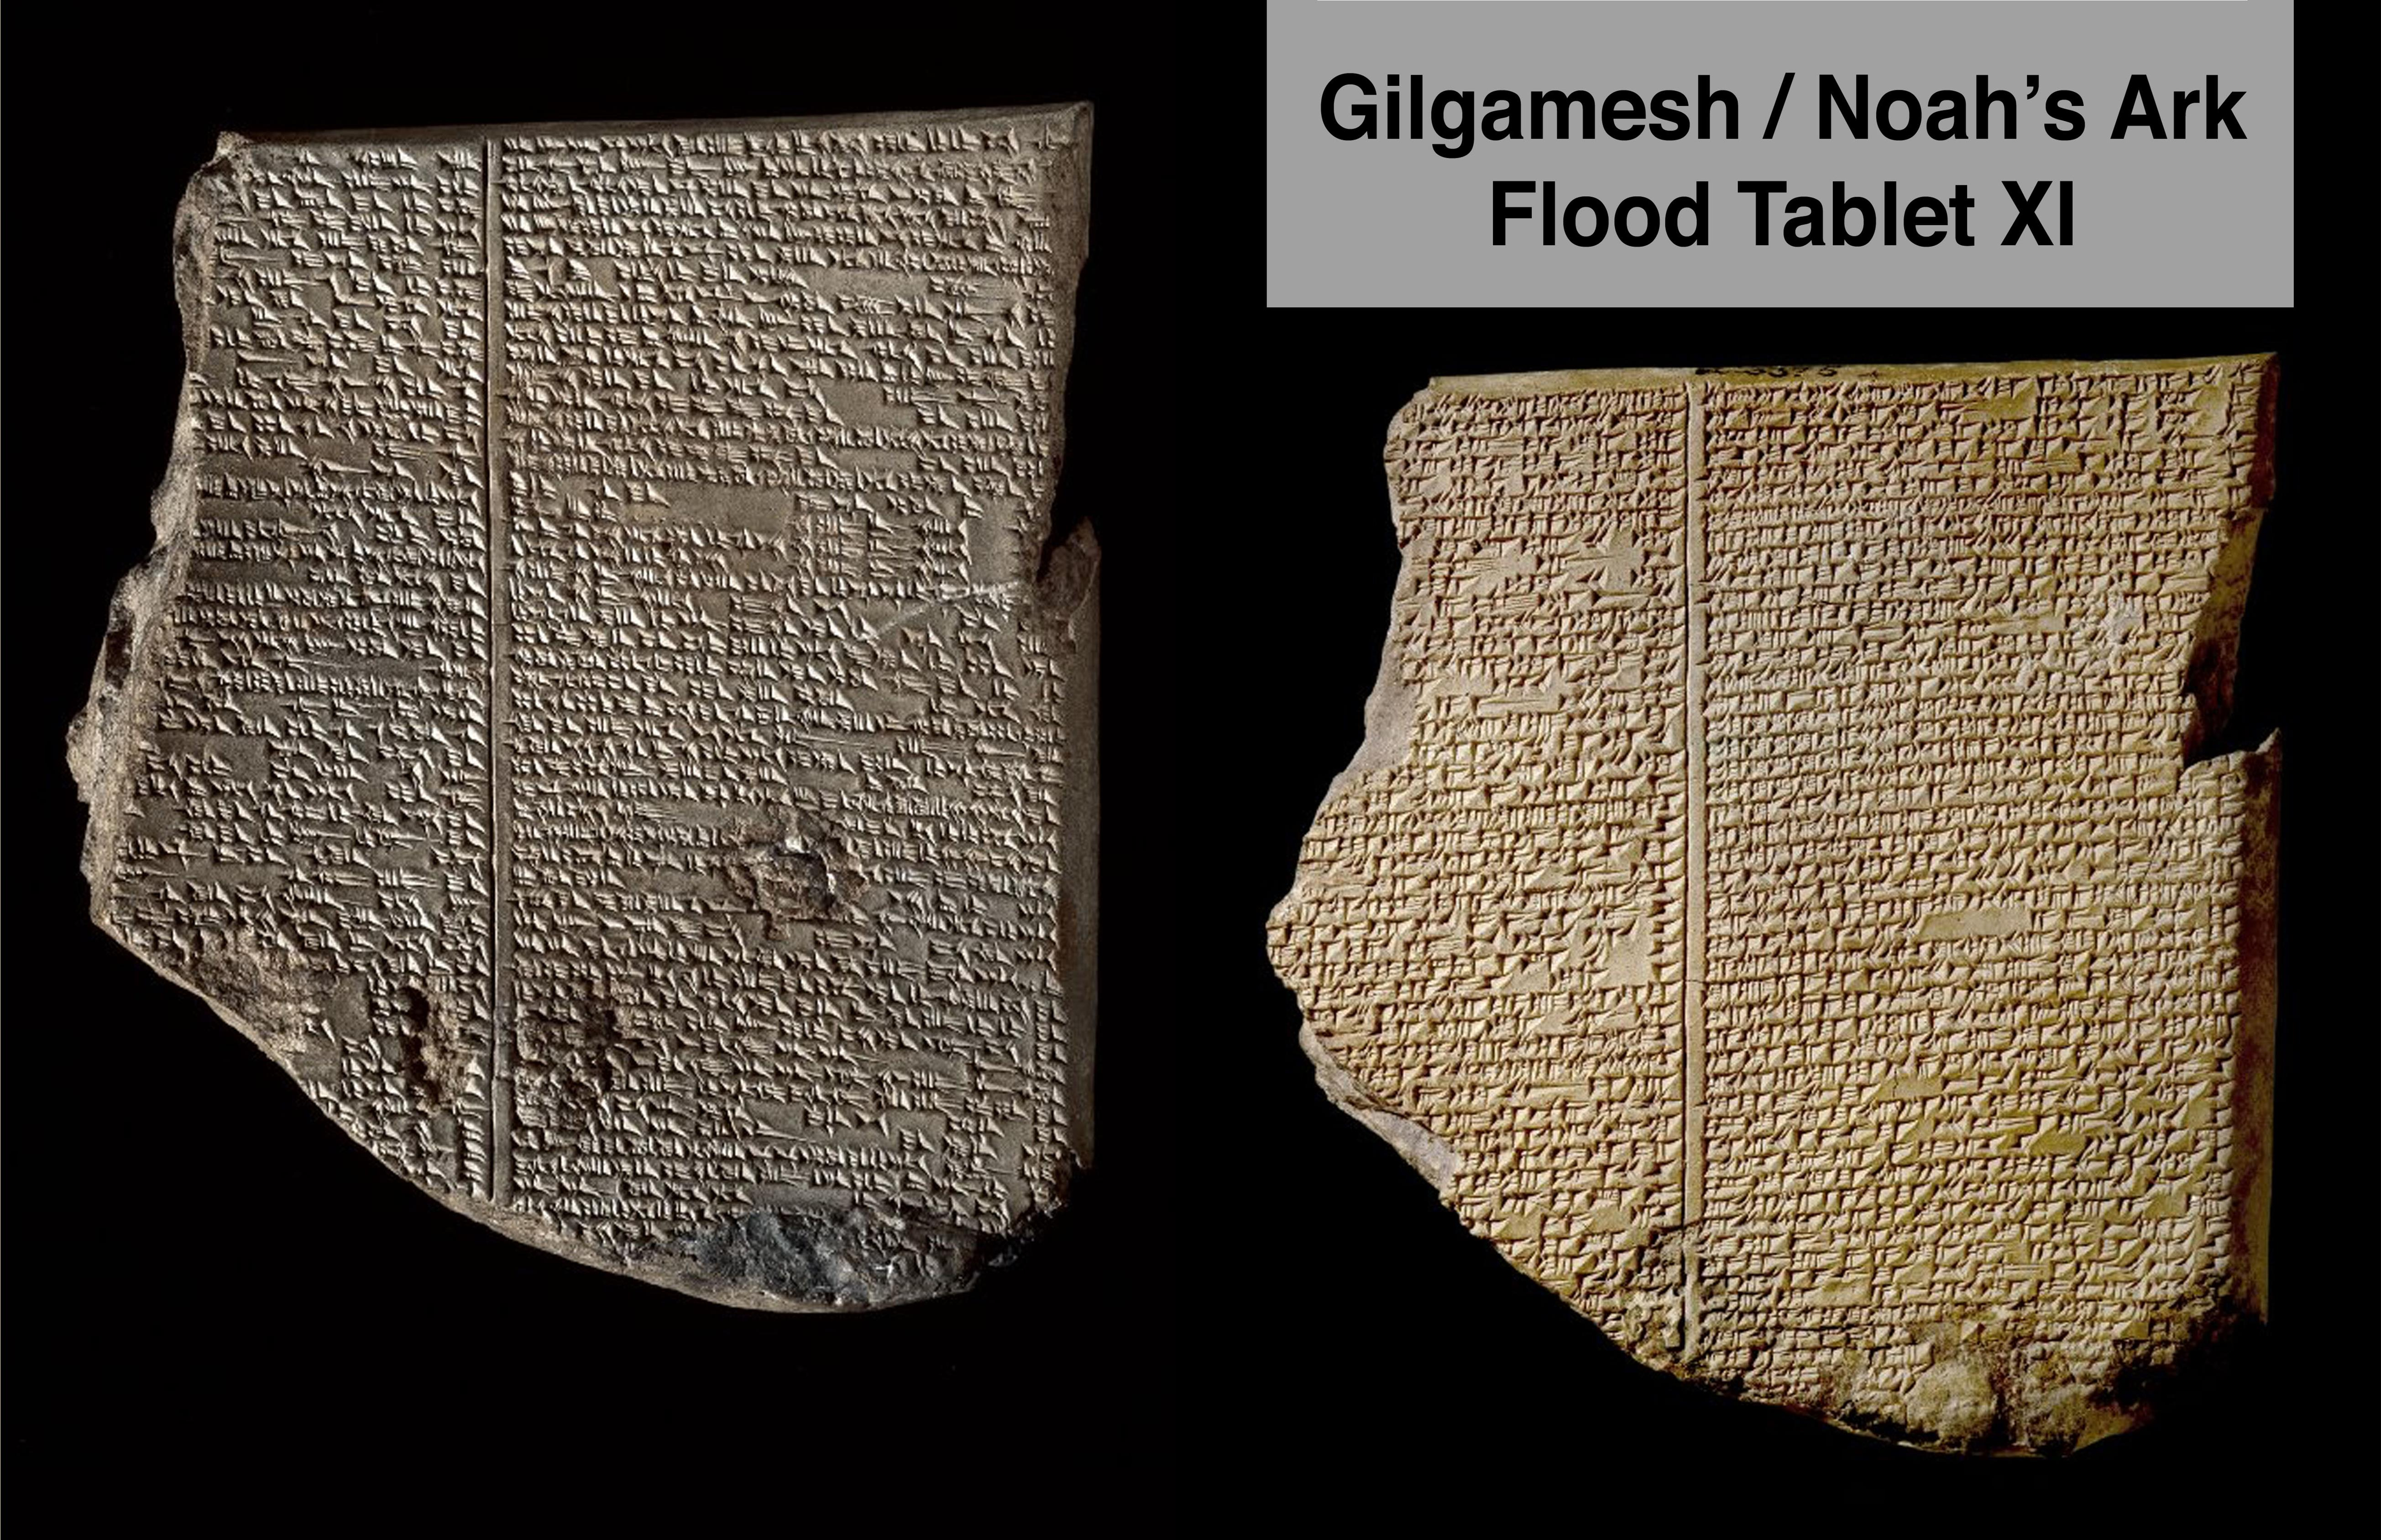 a comparative analysis of the great floods experienced by gilgamesh and noah A jungian analysis of the epic of gilgamesh this paper will provide a unique, psychological perspective on a timeless story that is.